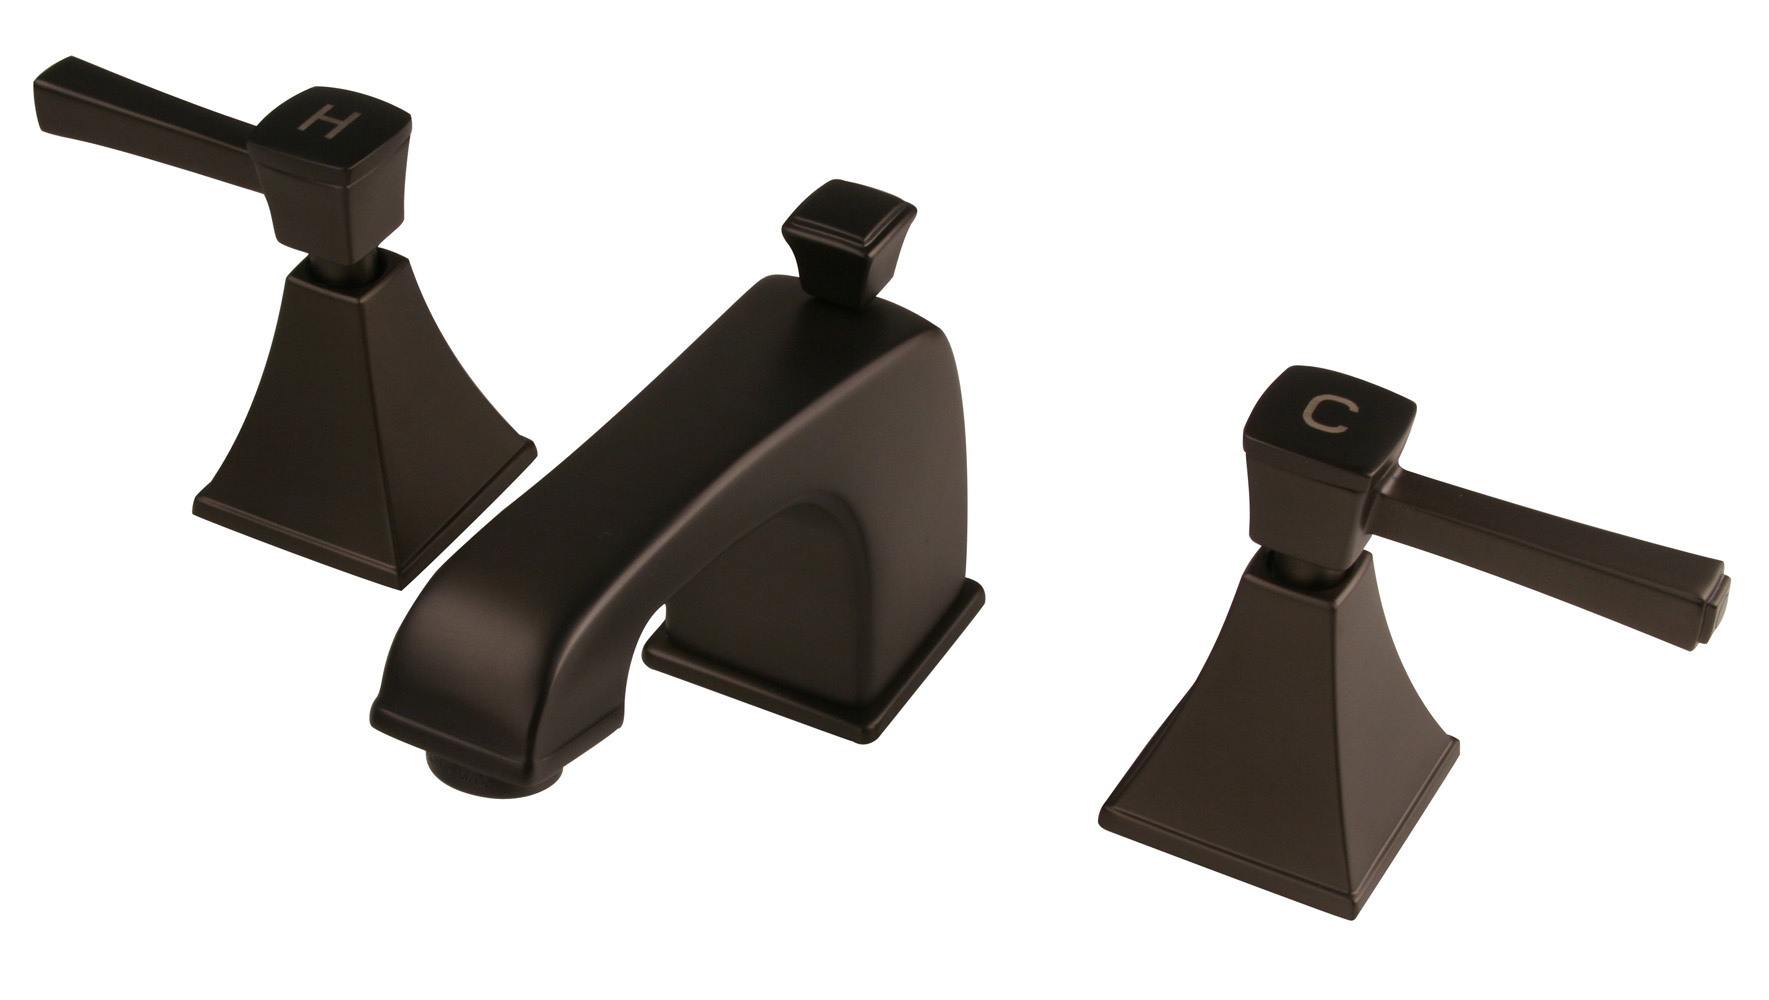 Fontaine Largest Private Faucet Brand On Ebay Brings Four New Worth Single Hole Handle Bathroom In Oil Rubbed Bronze